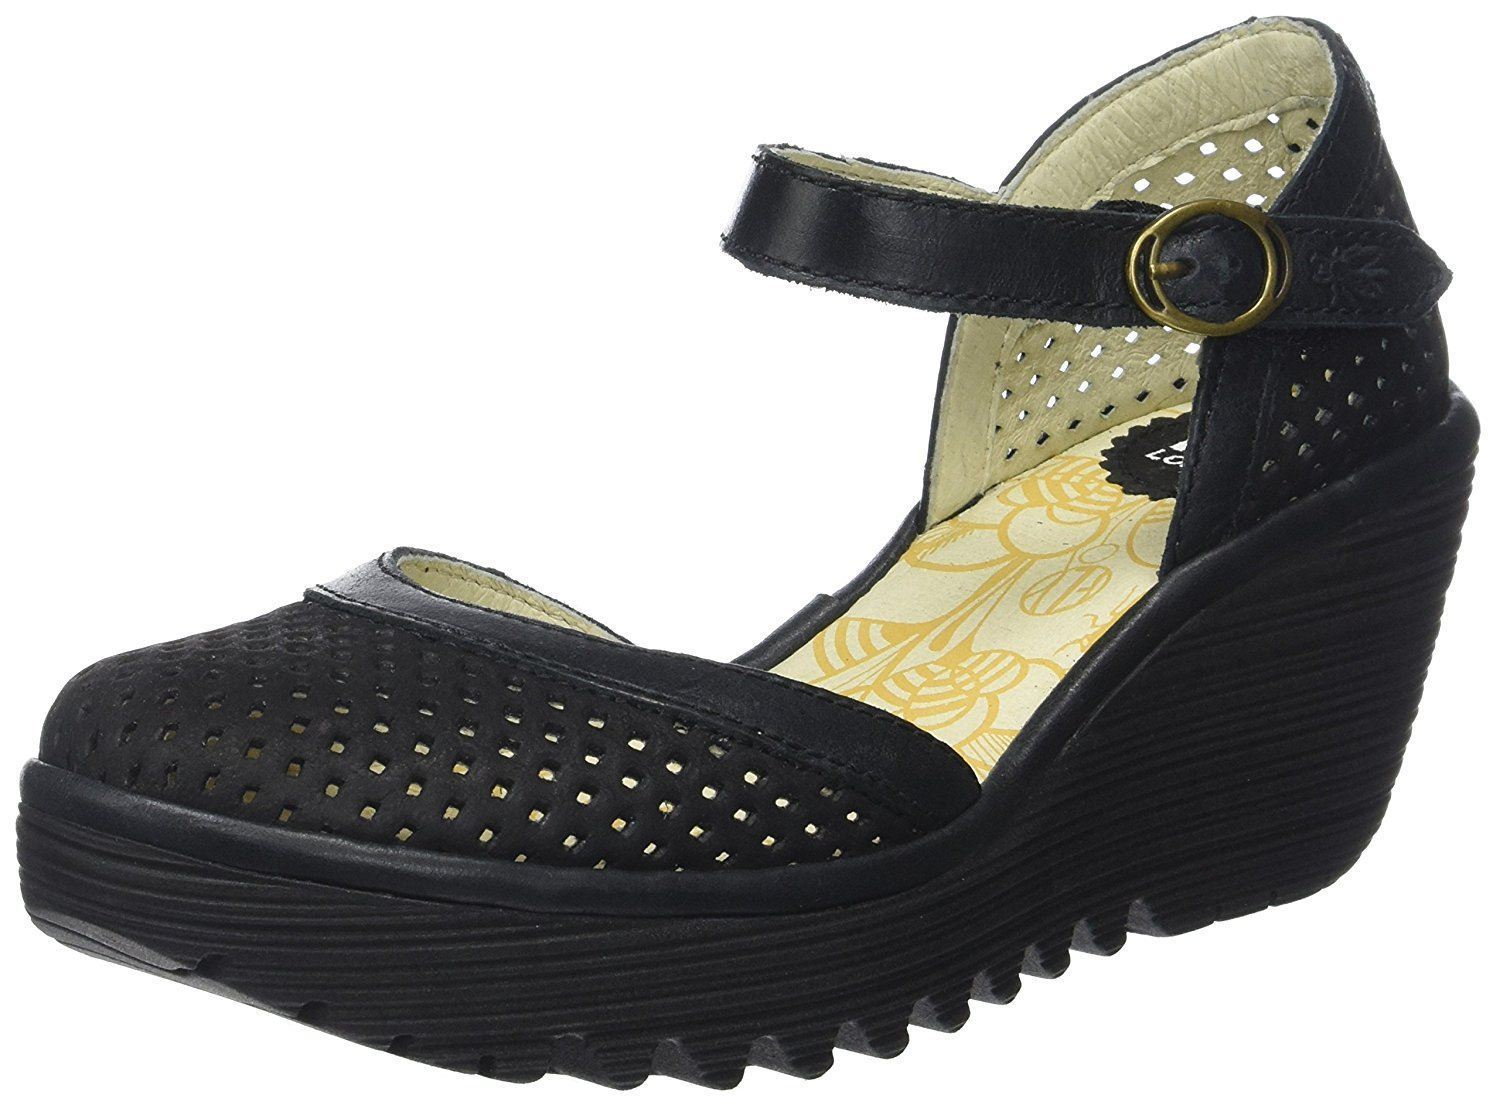 9bffd352253 Fly london Yupi840fly Black Womens Leather Wedge Sandals Shoes Quick View